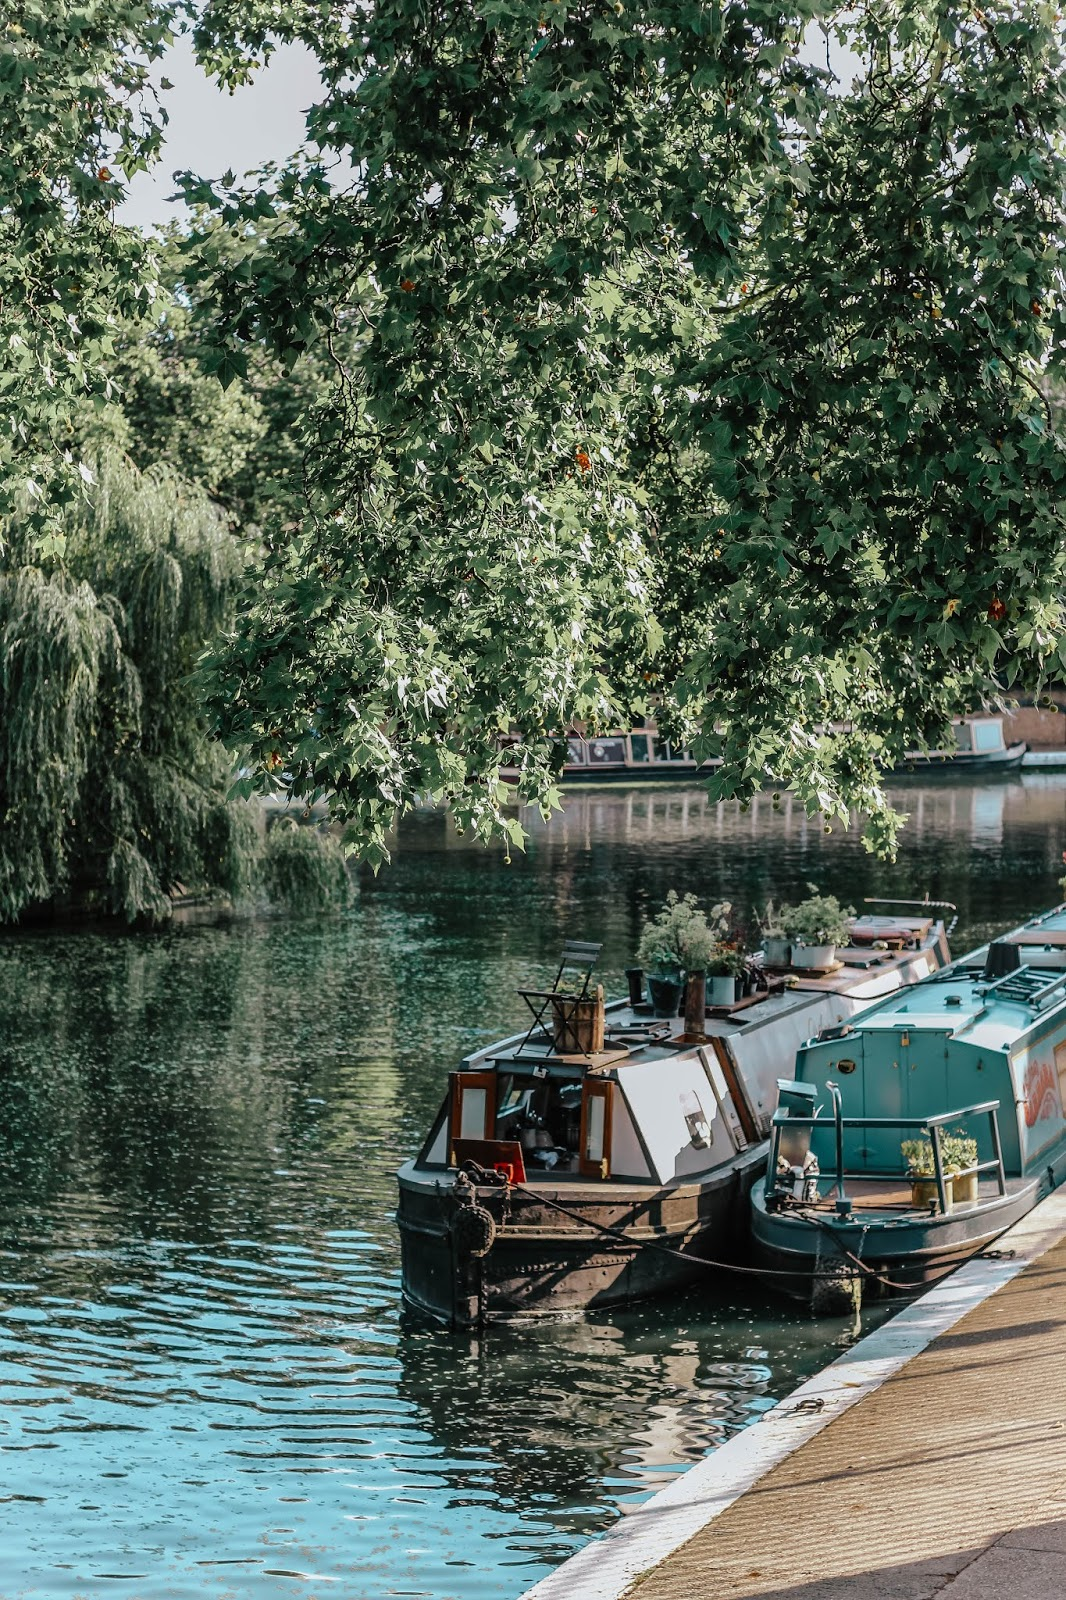 Boats on Canal Little Venice London